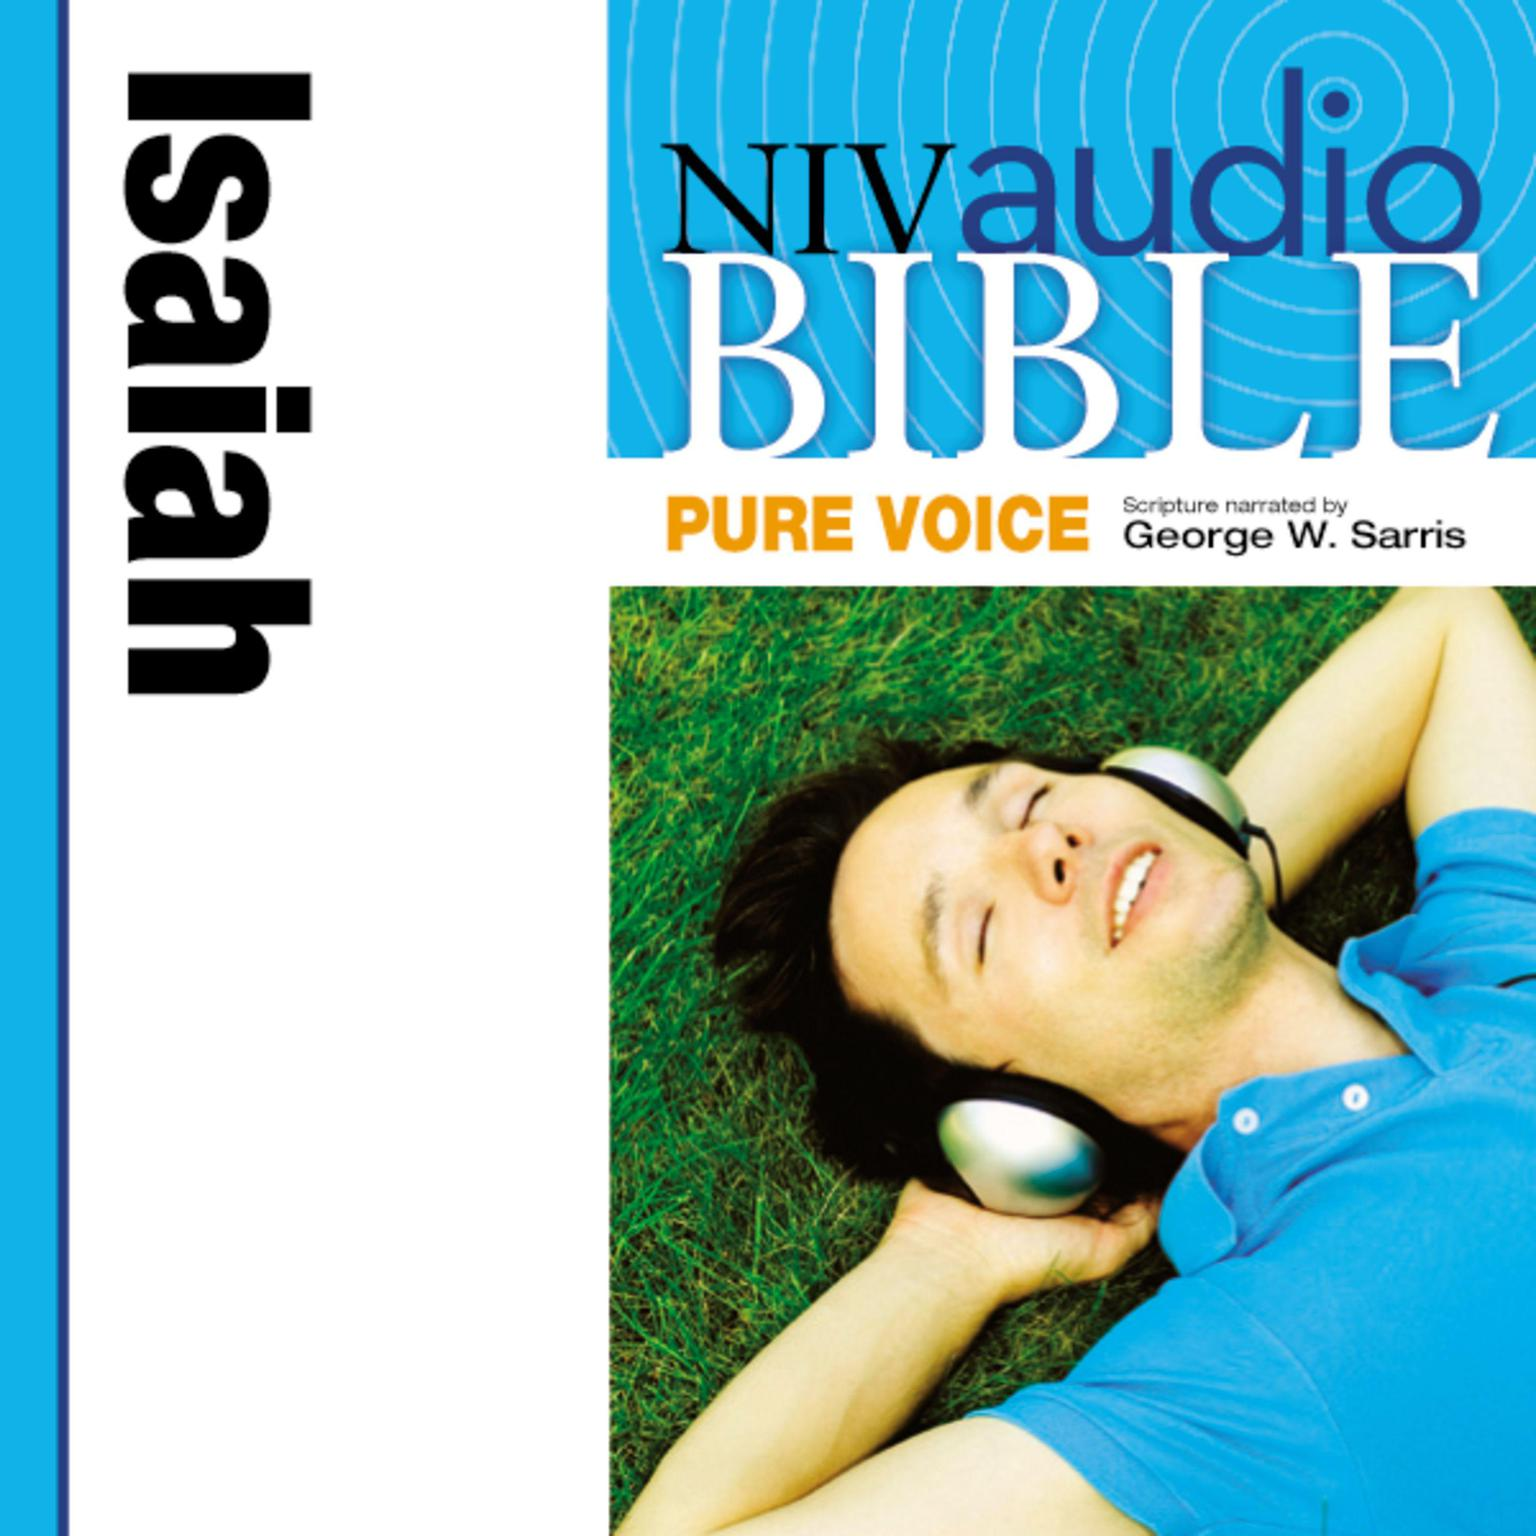 Printable NIV, Audio Bible, Pure Voice: Isaiah, Audio Download (Narrated by George W. Sarris) Audiobook Cover Art